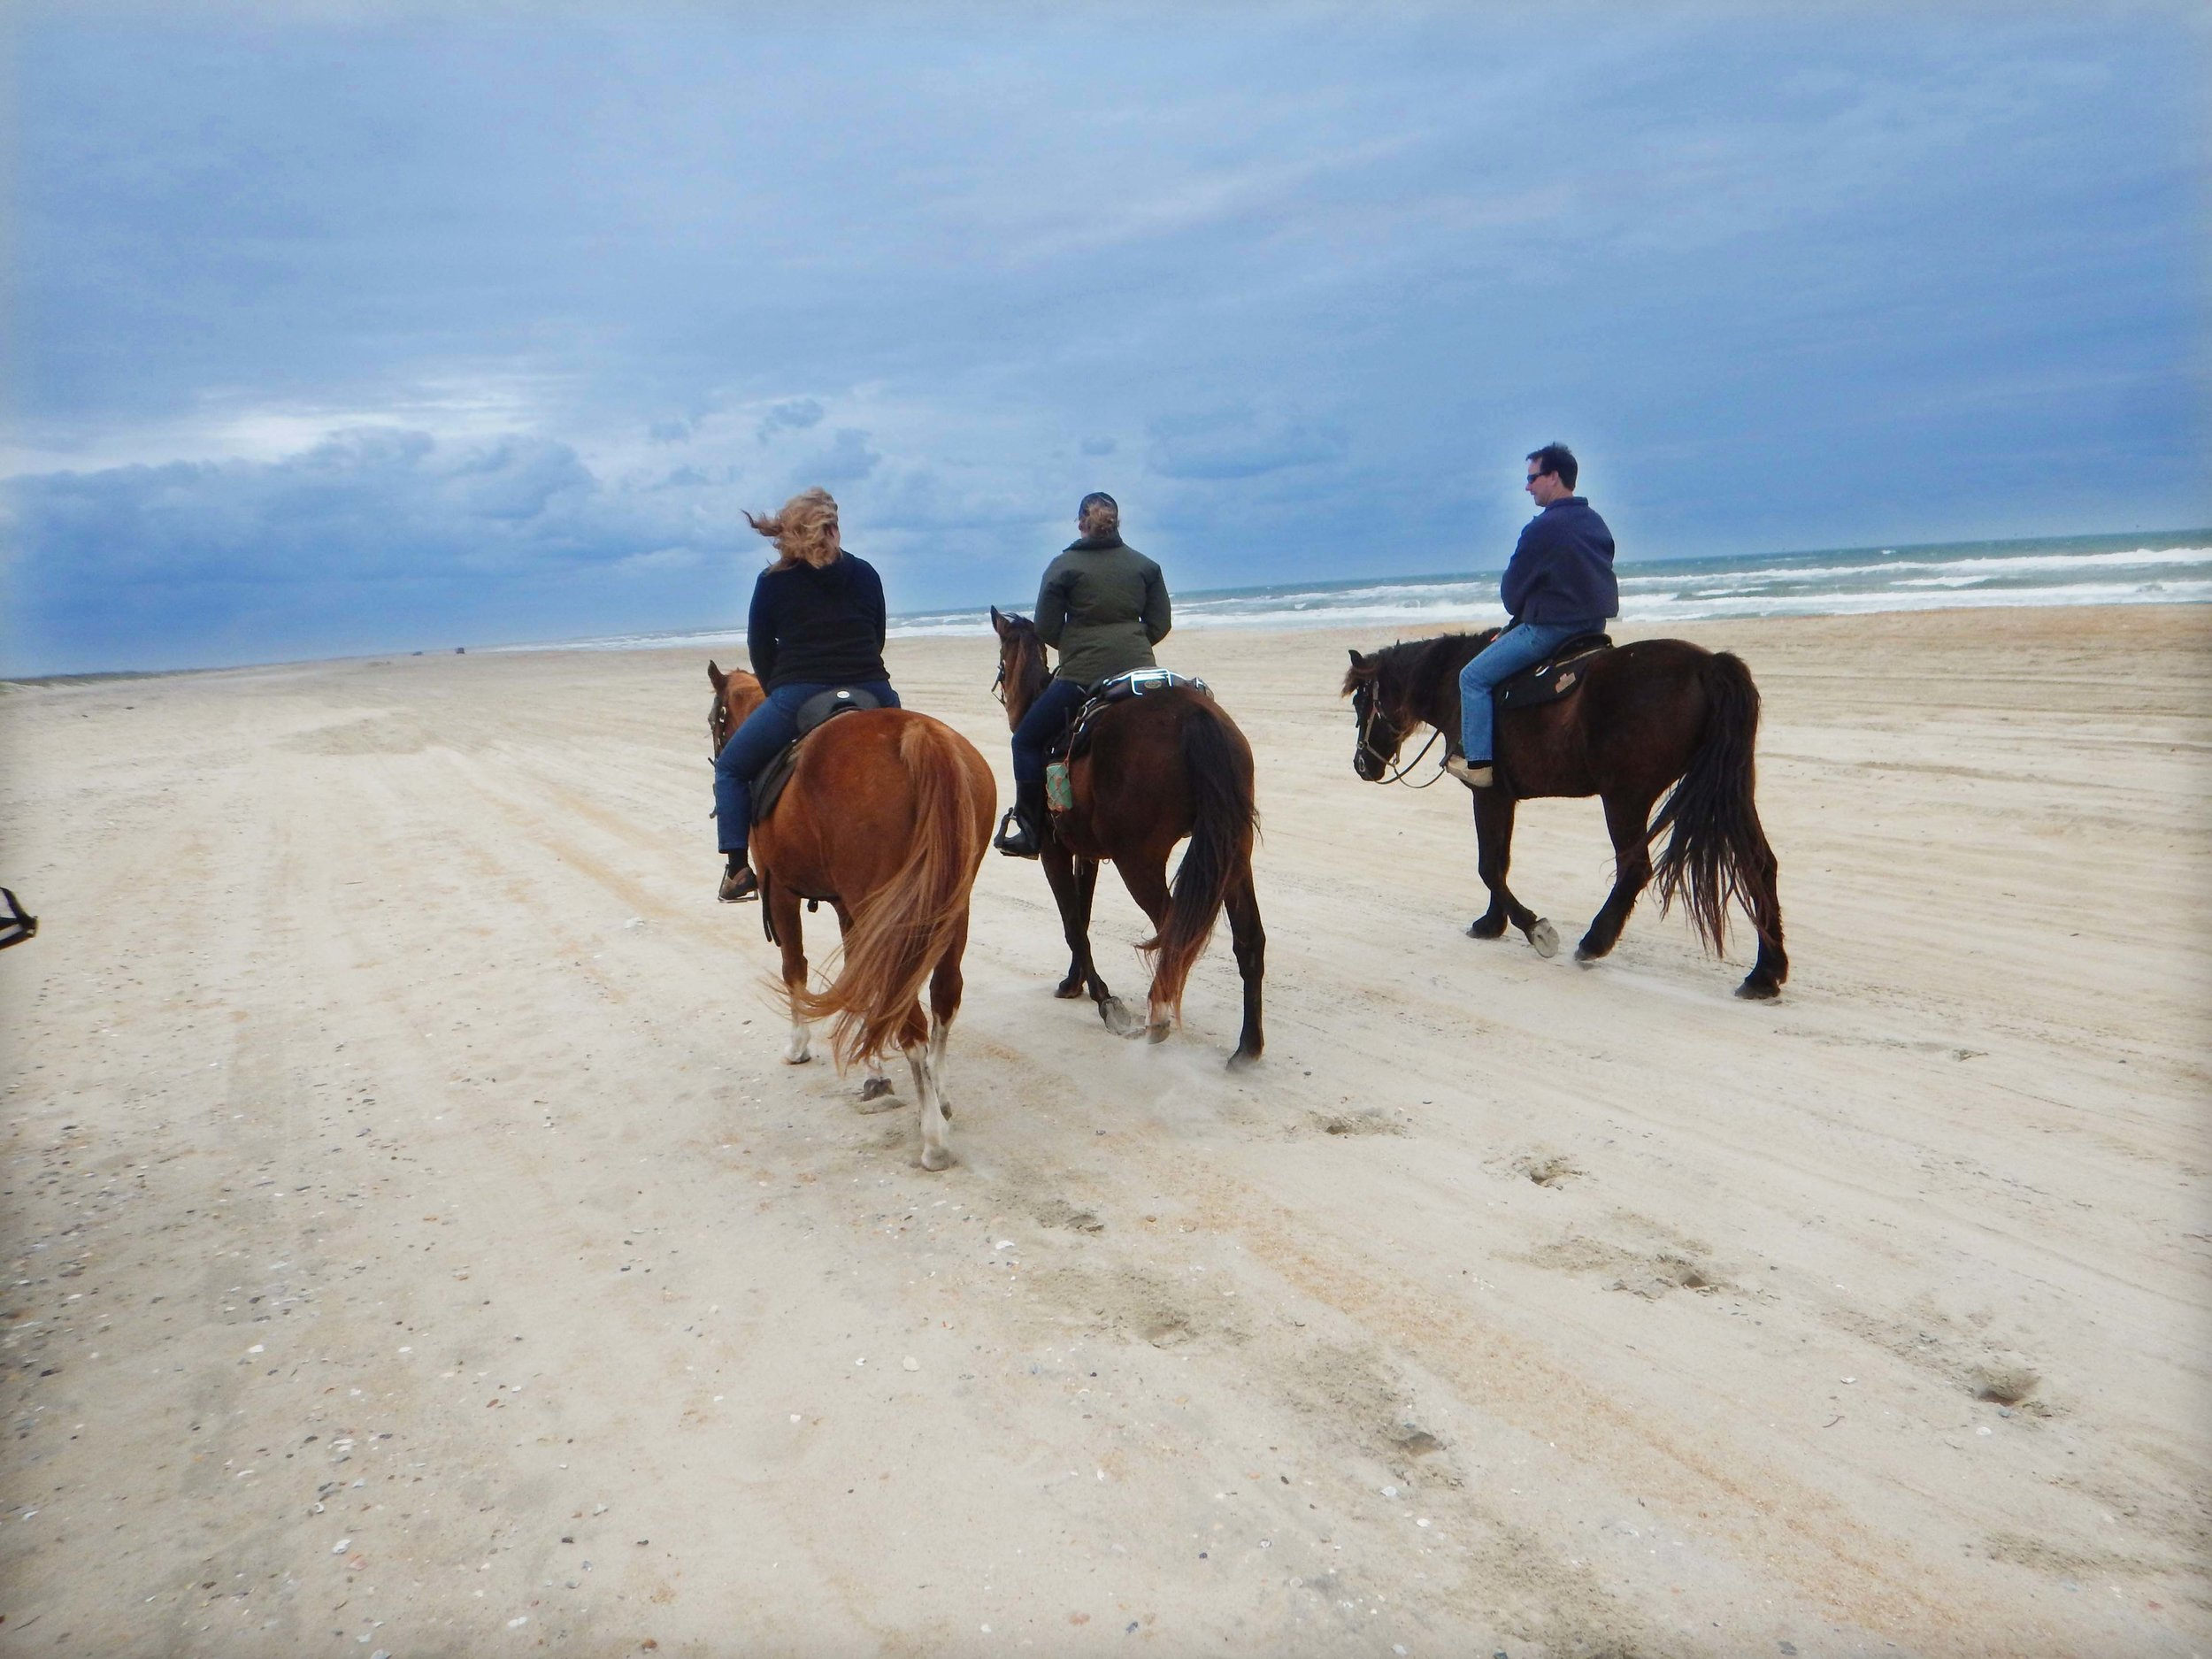 Equine Adventures takes groups horseback riding on Frisco Beach.